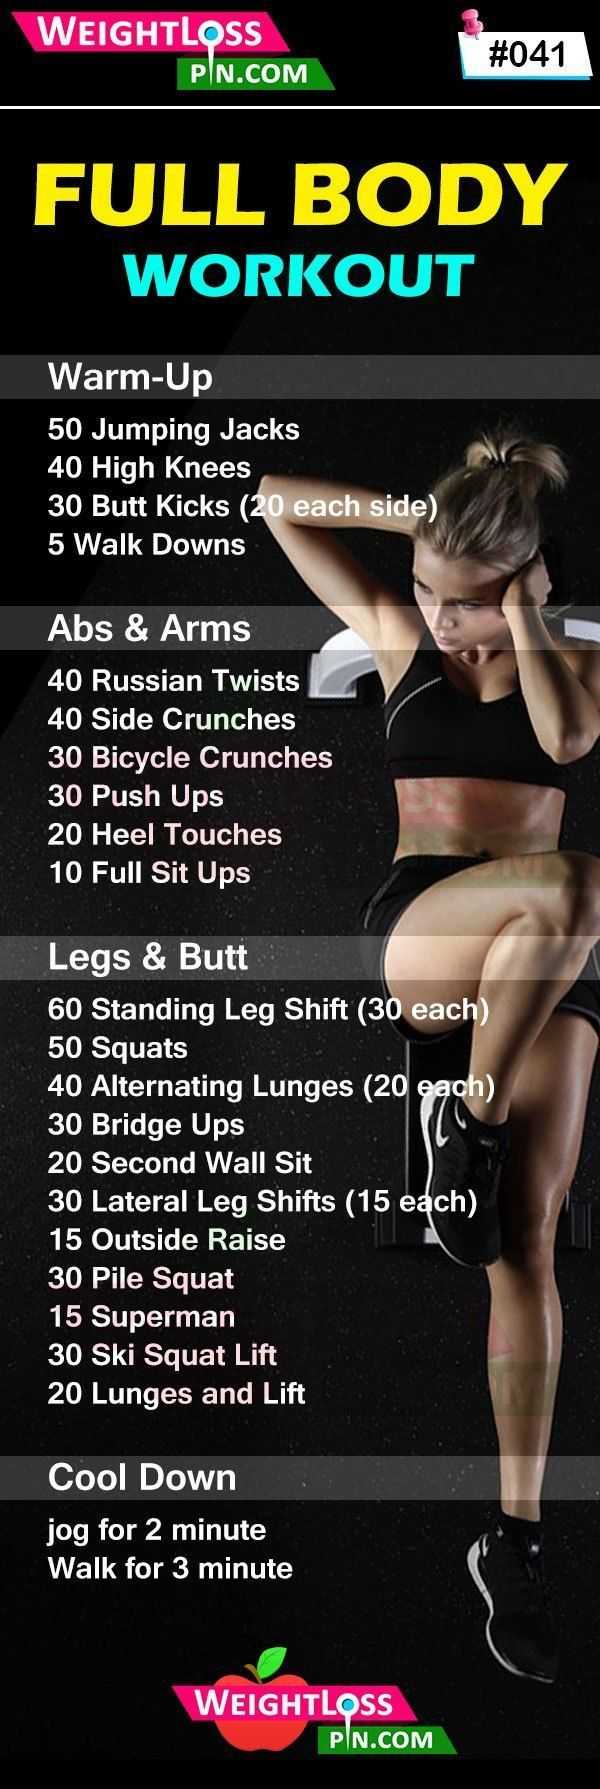 Awesome Full body workout challenge at home. 30 day total body fitness challenges no equipment required. If your goal is weight loss, getting tone, building muscle, or staying fit, these are great workouts. #Workoutchallenge #fullbodyworkout #30daychallenge #fitnesschallenge #weightloss #bodyworkout #workoutchallenge